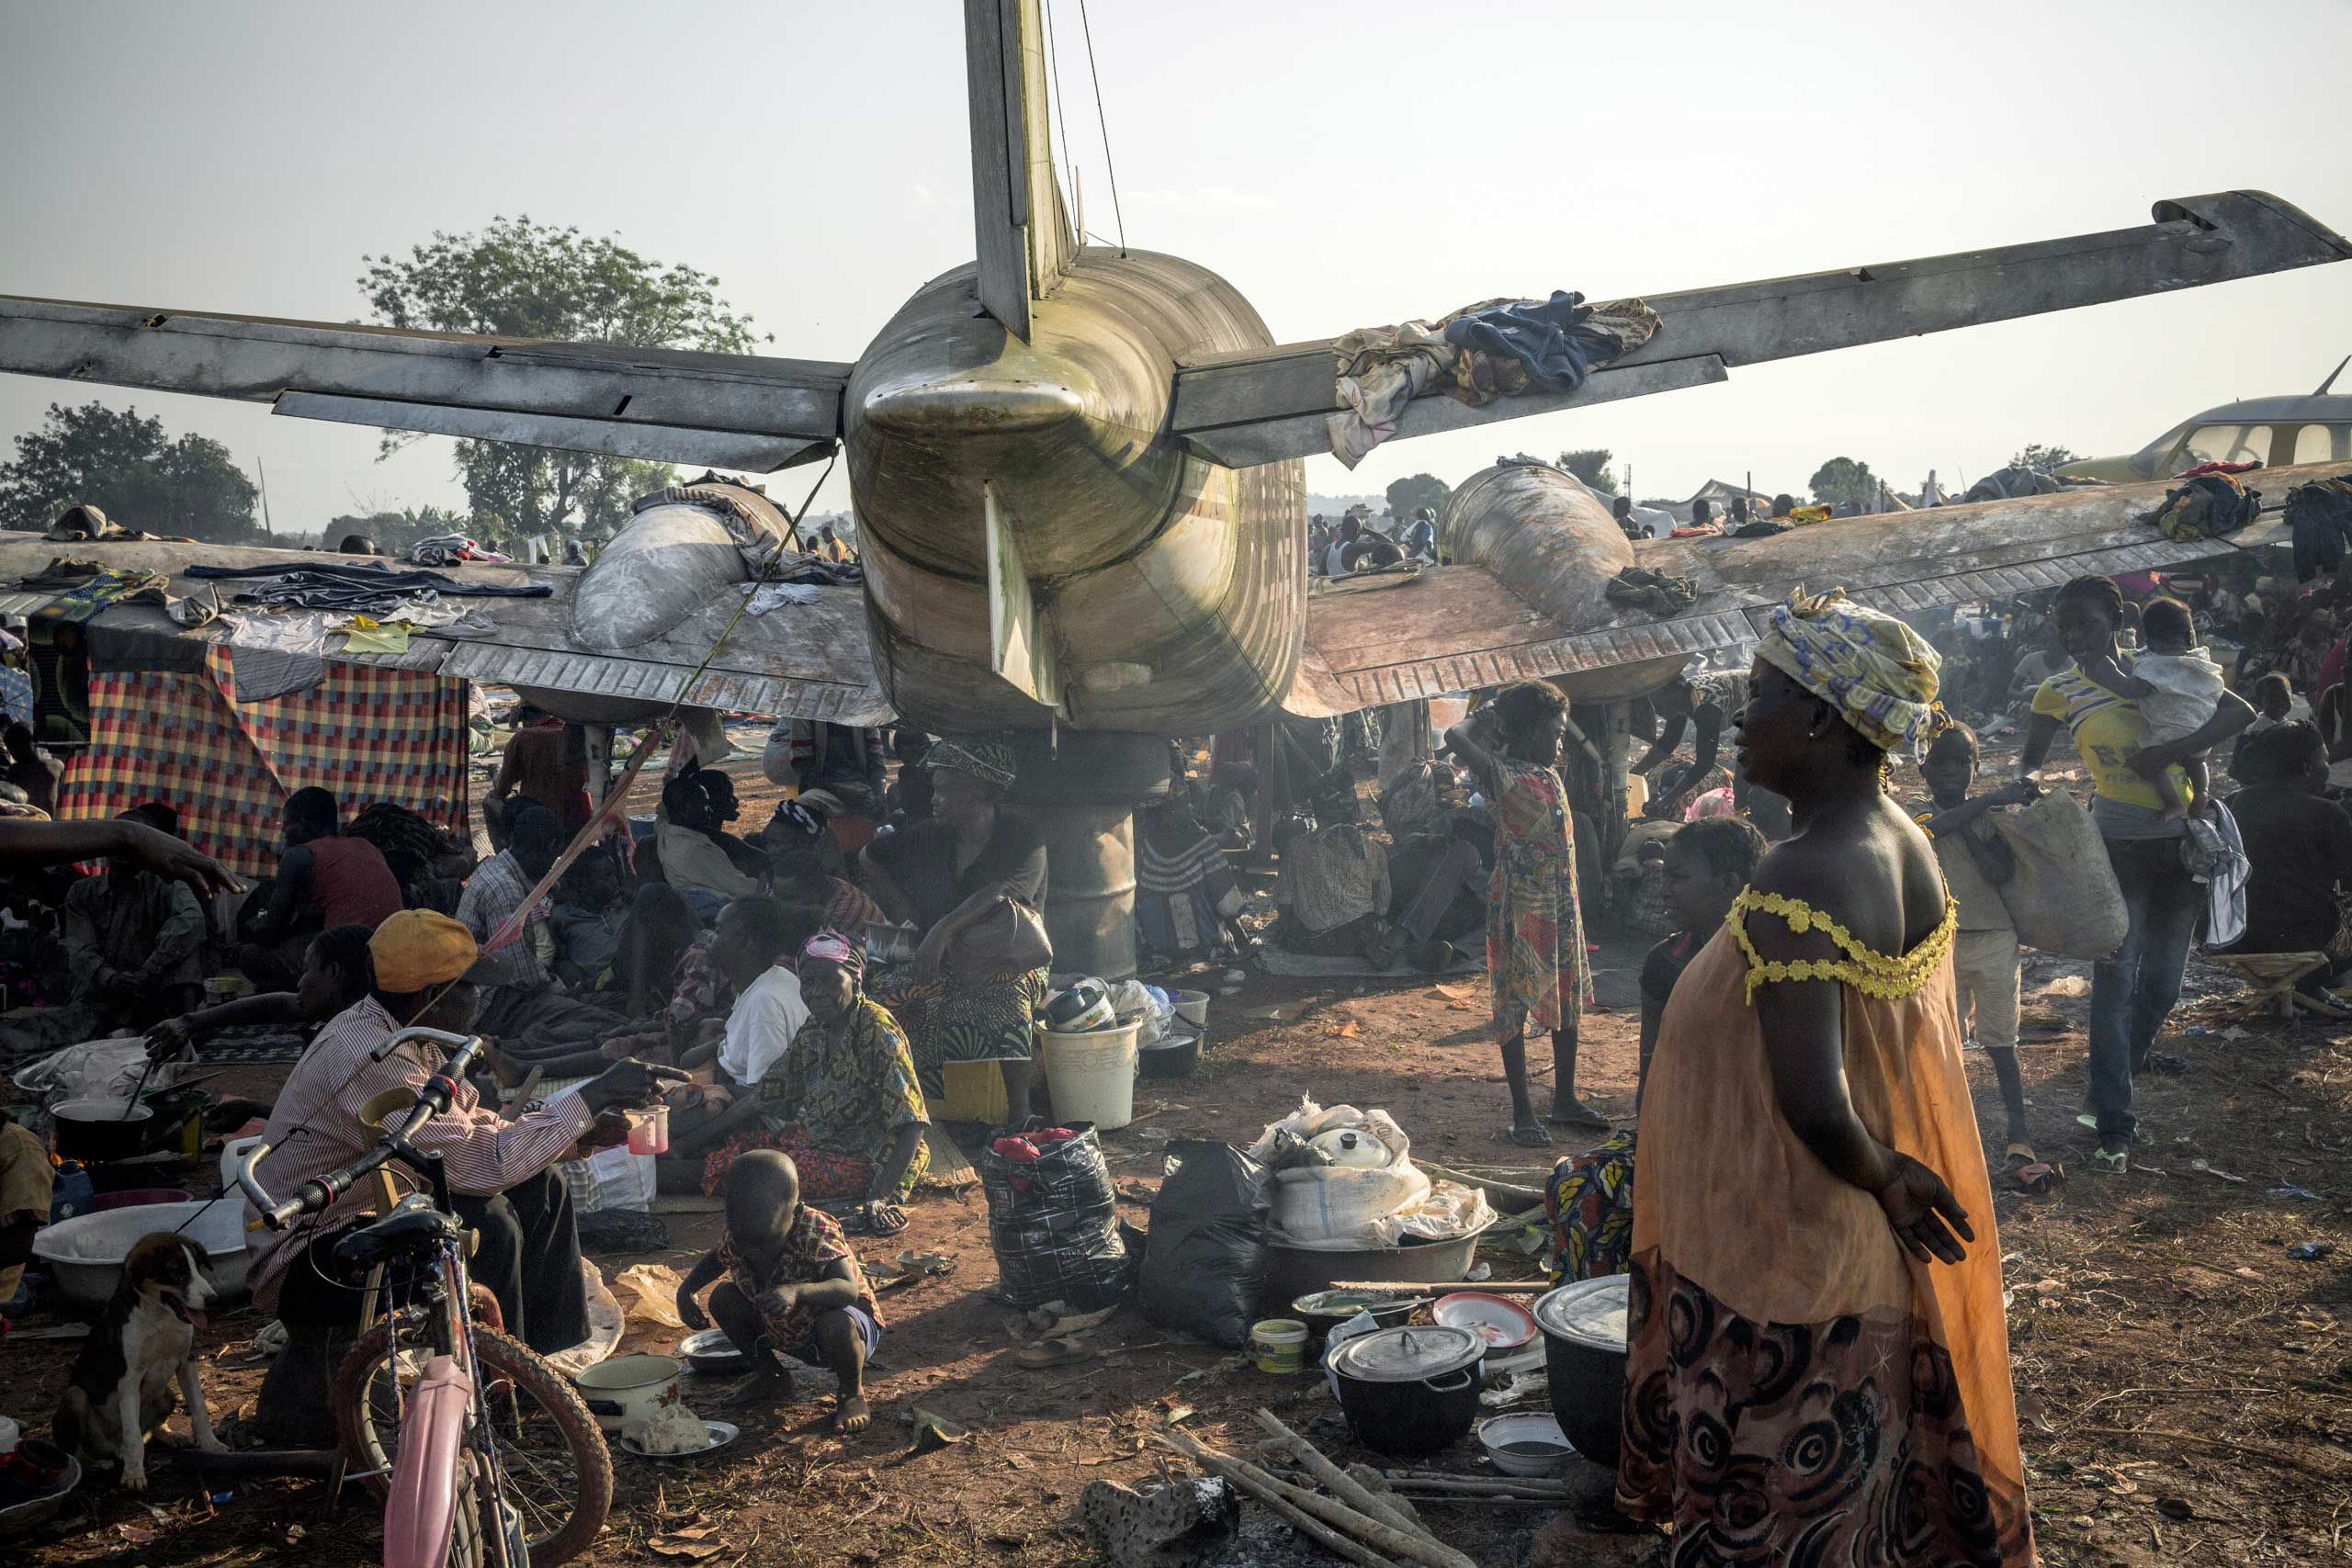 A makeshift camp near Bangui's main airport would grow to hold more than 100,000 people at its peak in late 2013 and early 2014. They had fled fighting between Séléka and anti-balaka, and felt more secure with French forces at the entrance. Bangui, Central African Republic. Dec. 8, 2013.